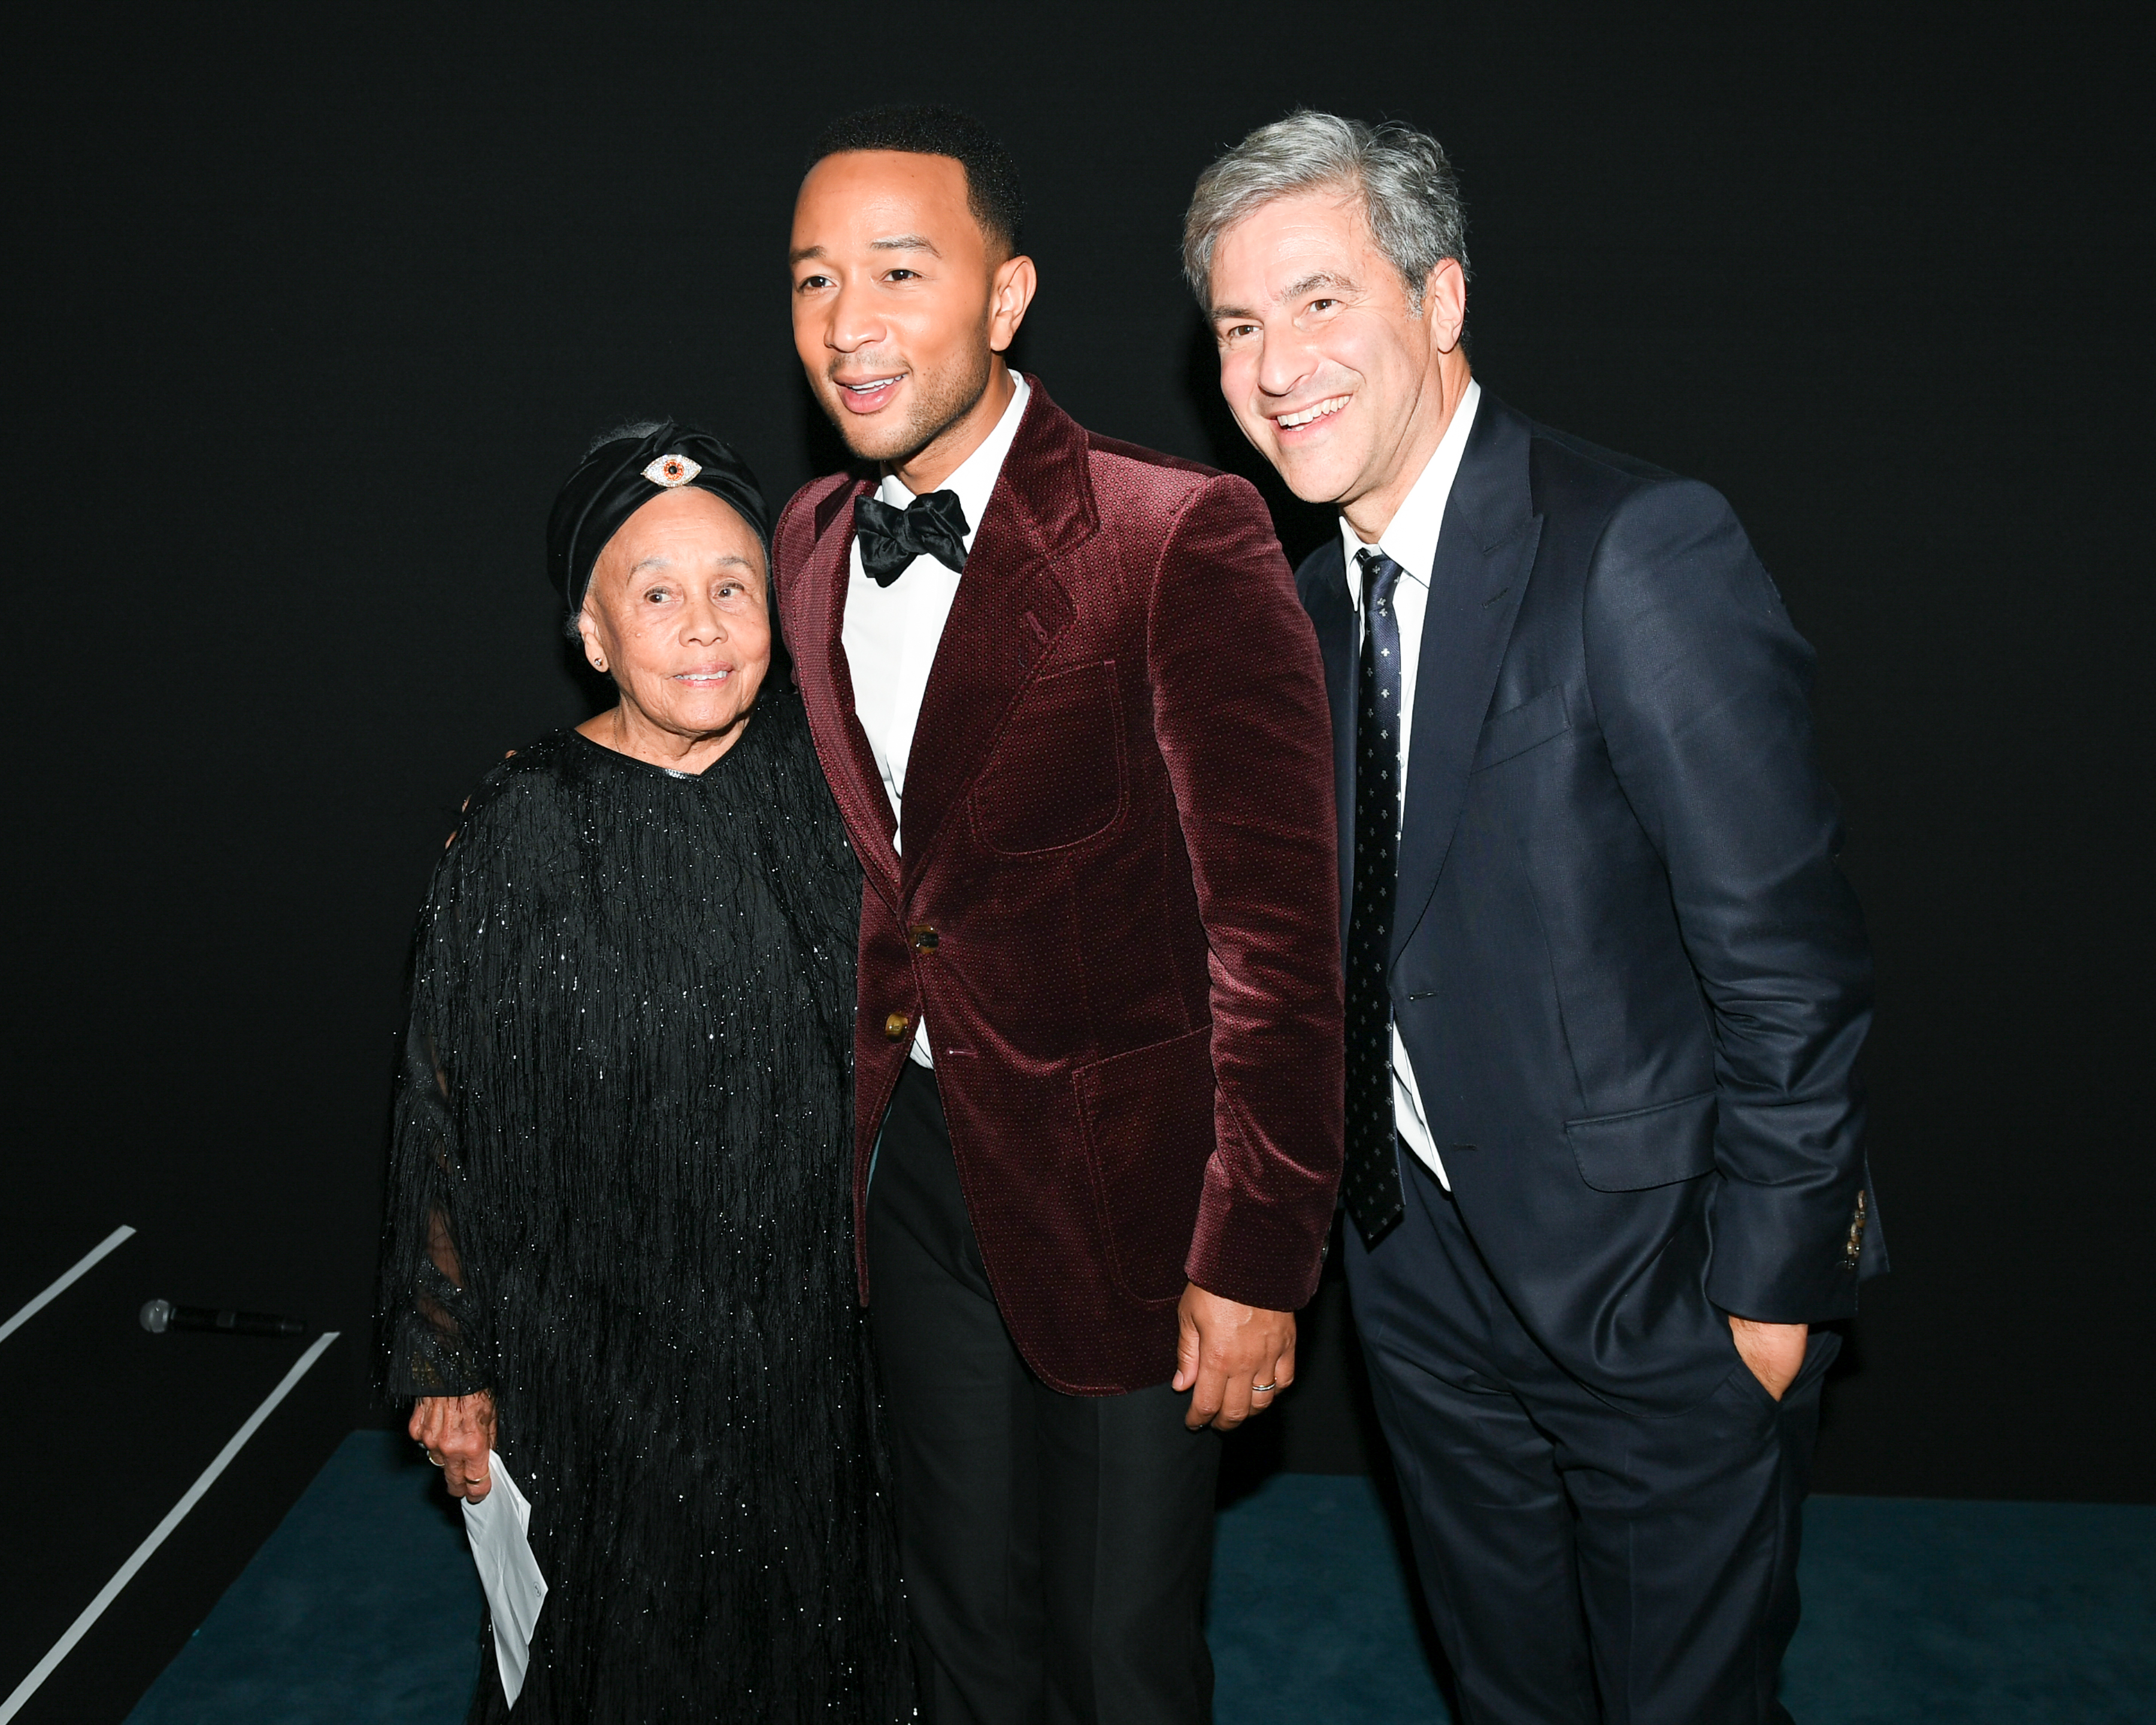 Honoree Betye Saar, John Legend, and LACMA CEO and Director Michael Govan, photo by Billy Farrell/BFA.com